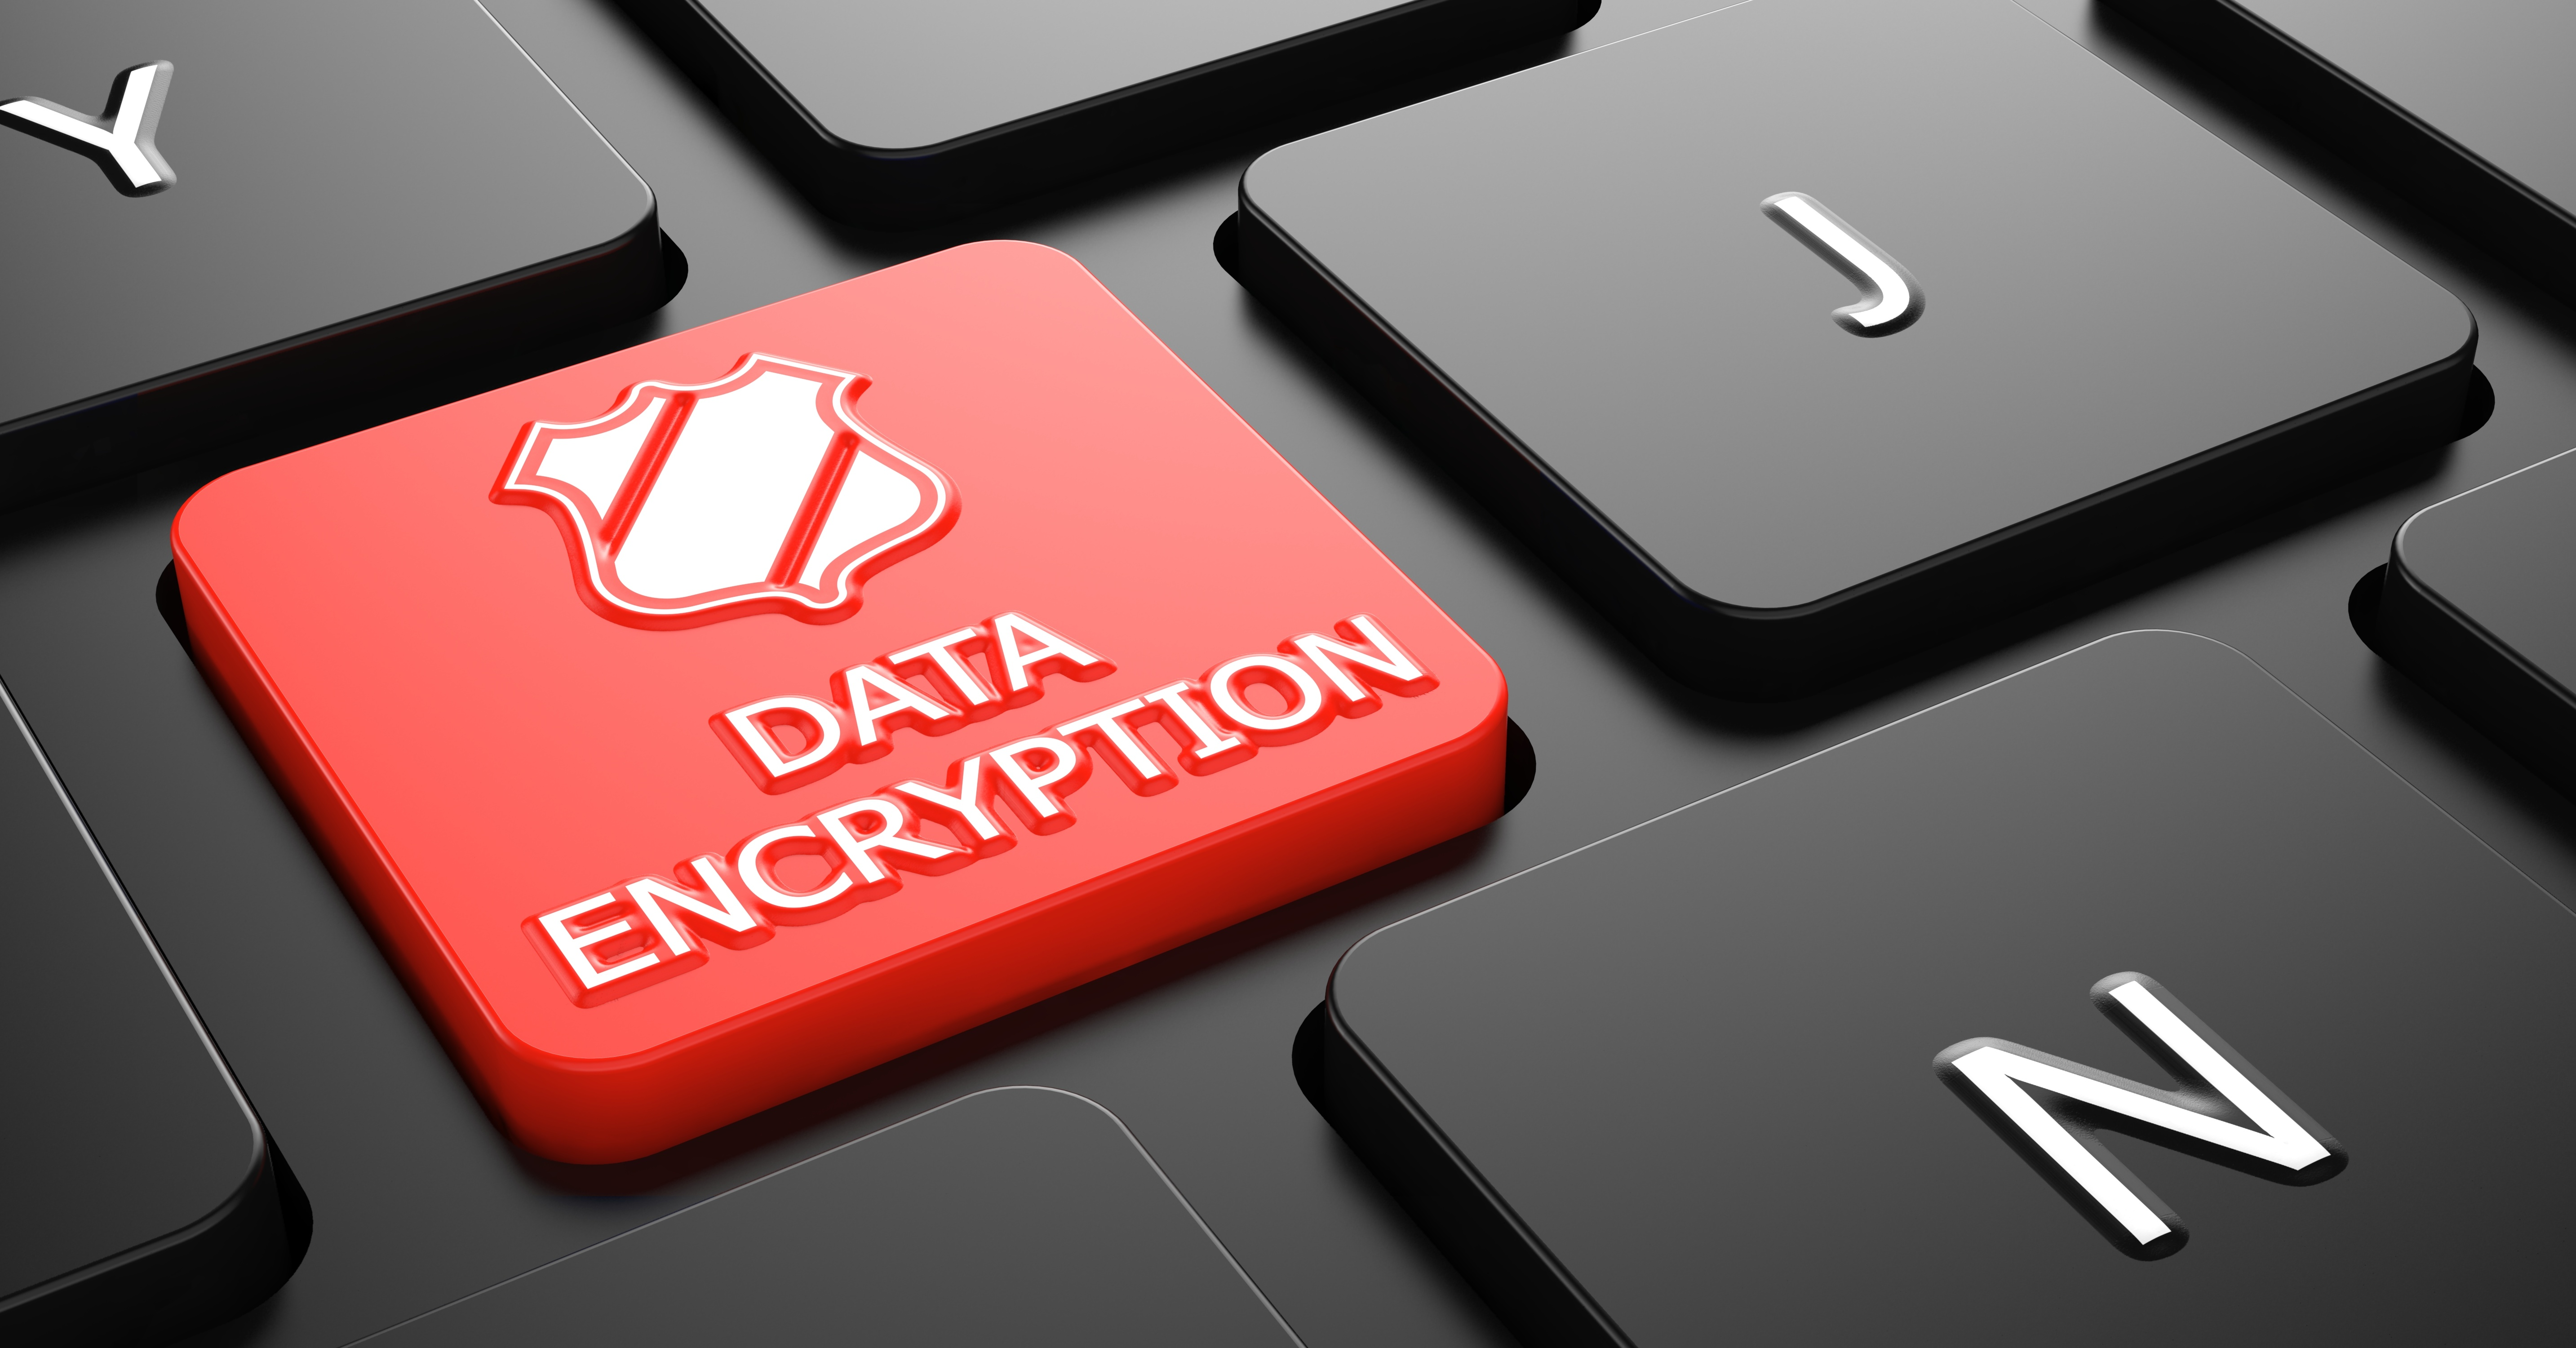 Data Encryption – how to keep your data safe